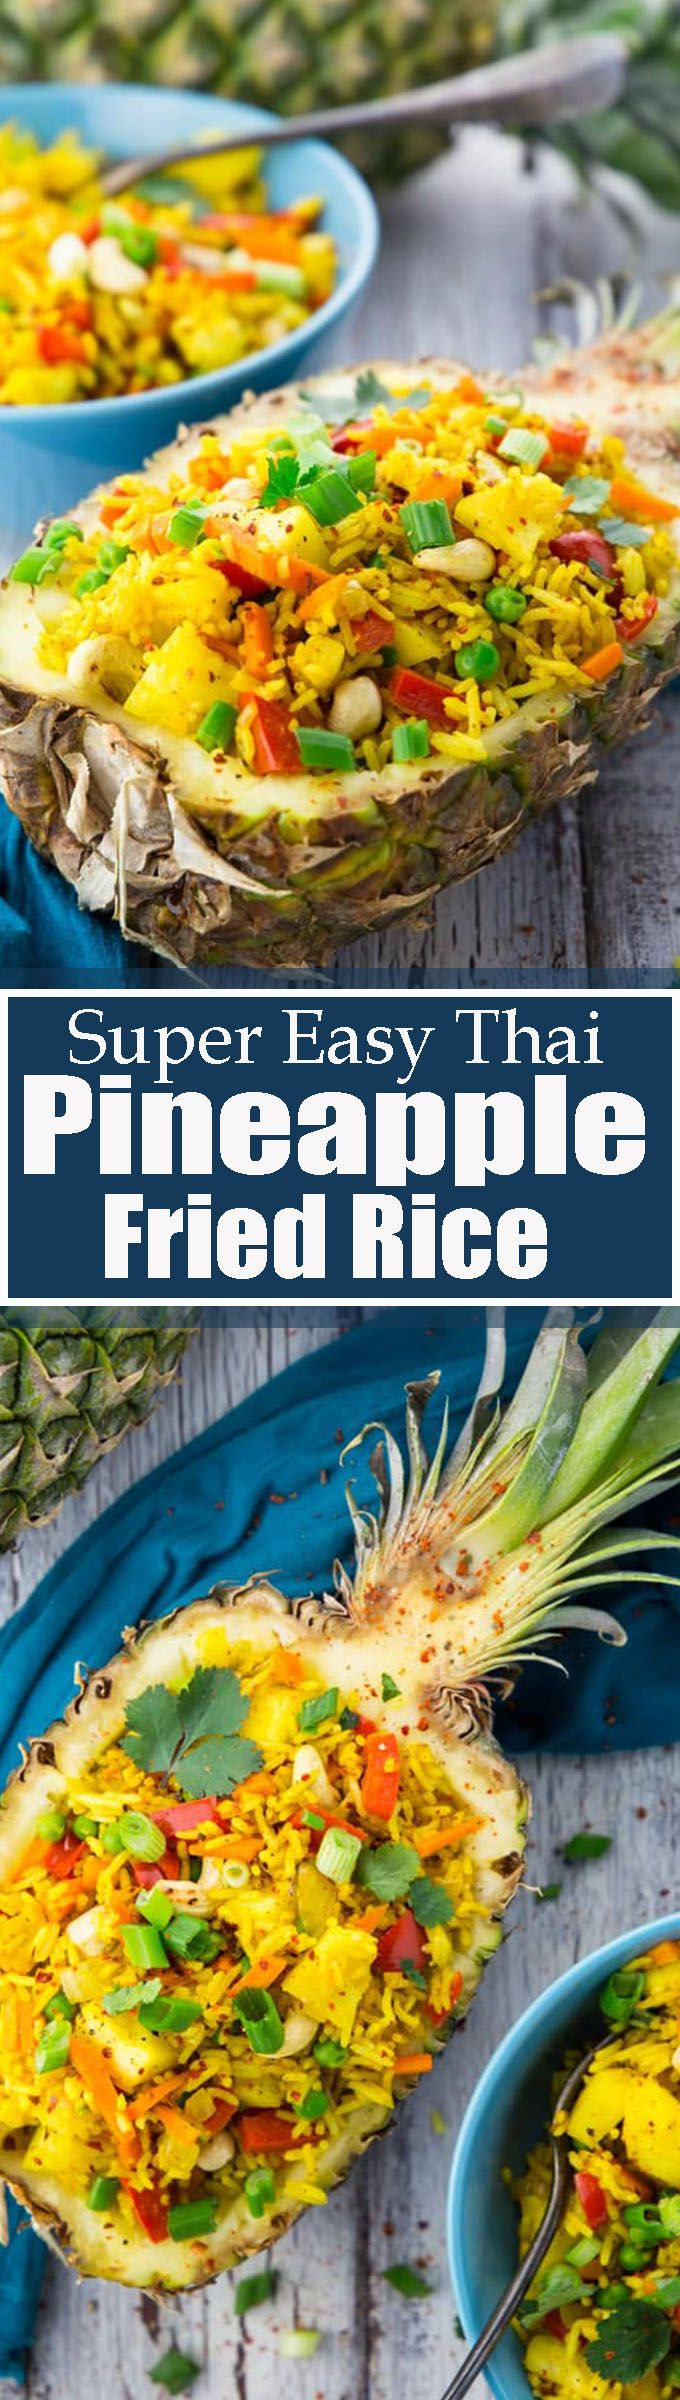 This Thai pineapple fried rice is one of my favorite vegan dinner recipes or one of my favorite vegetarian recipes in general! Find more vegan recipes at veganheaven.org <3